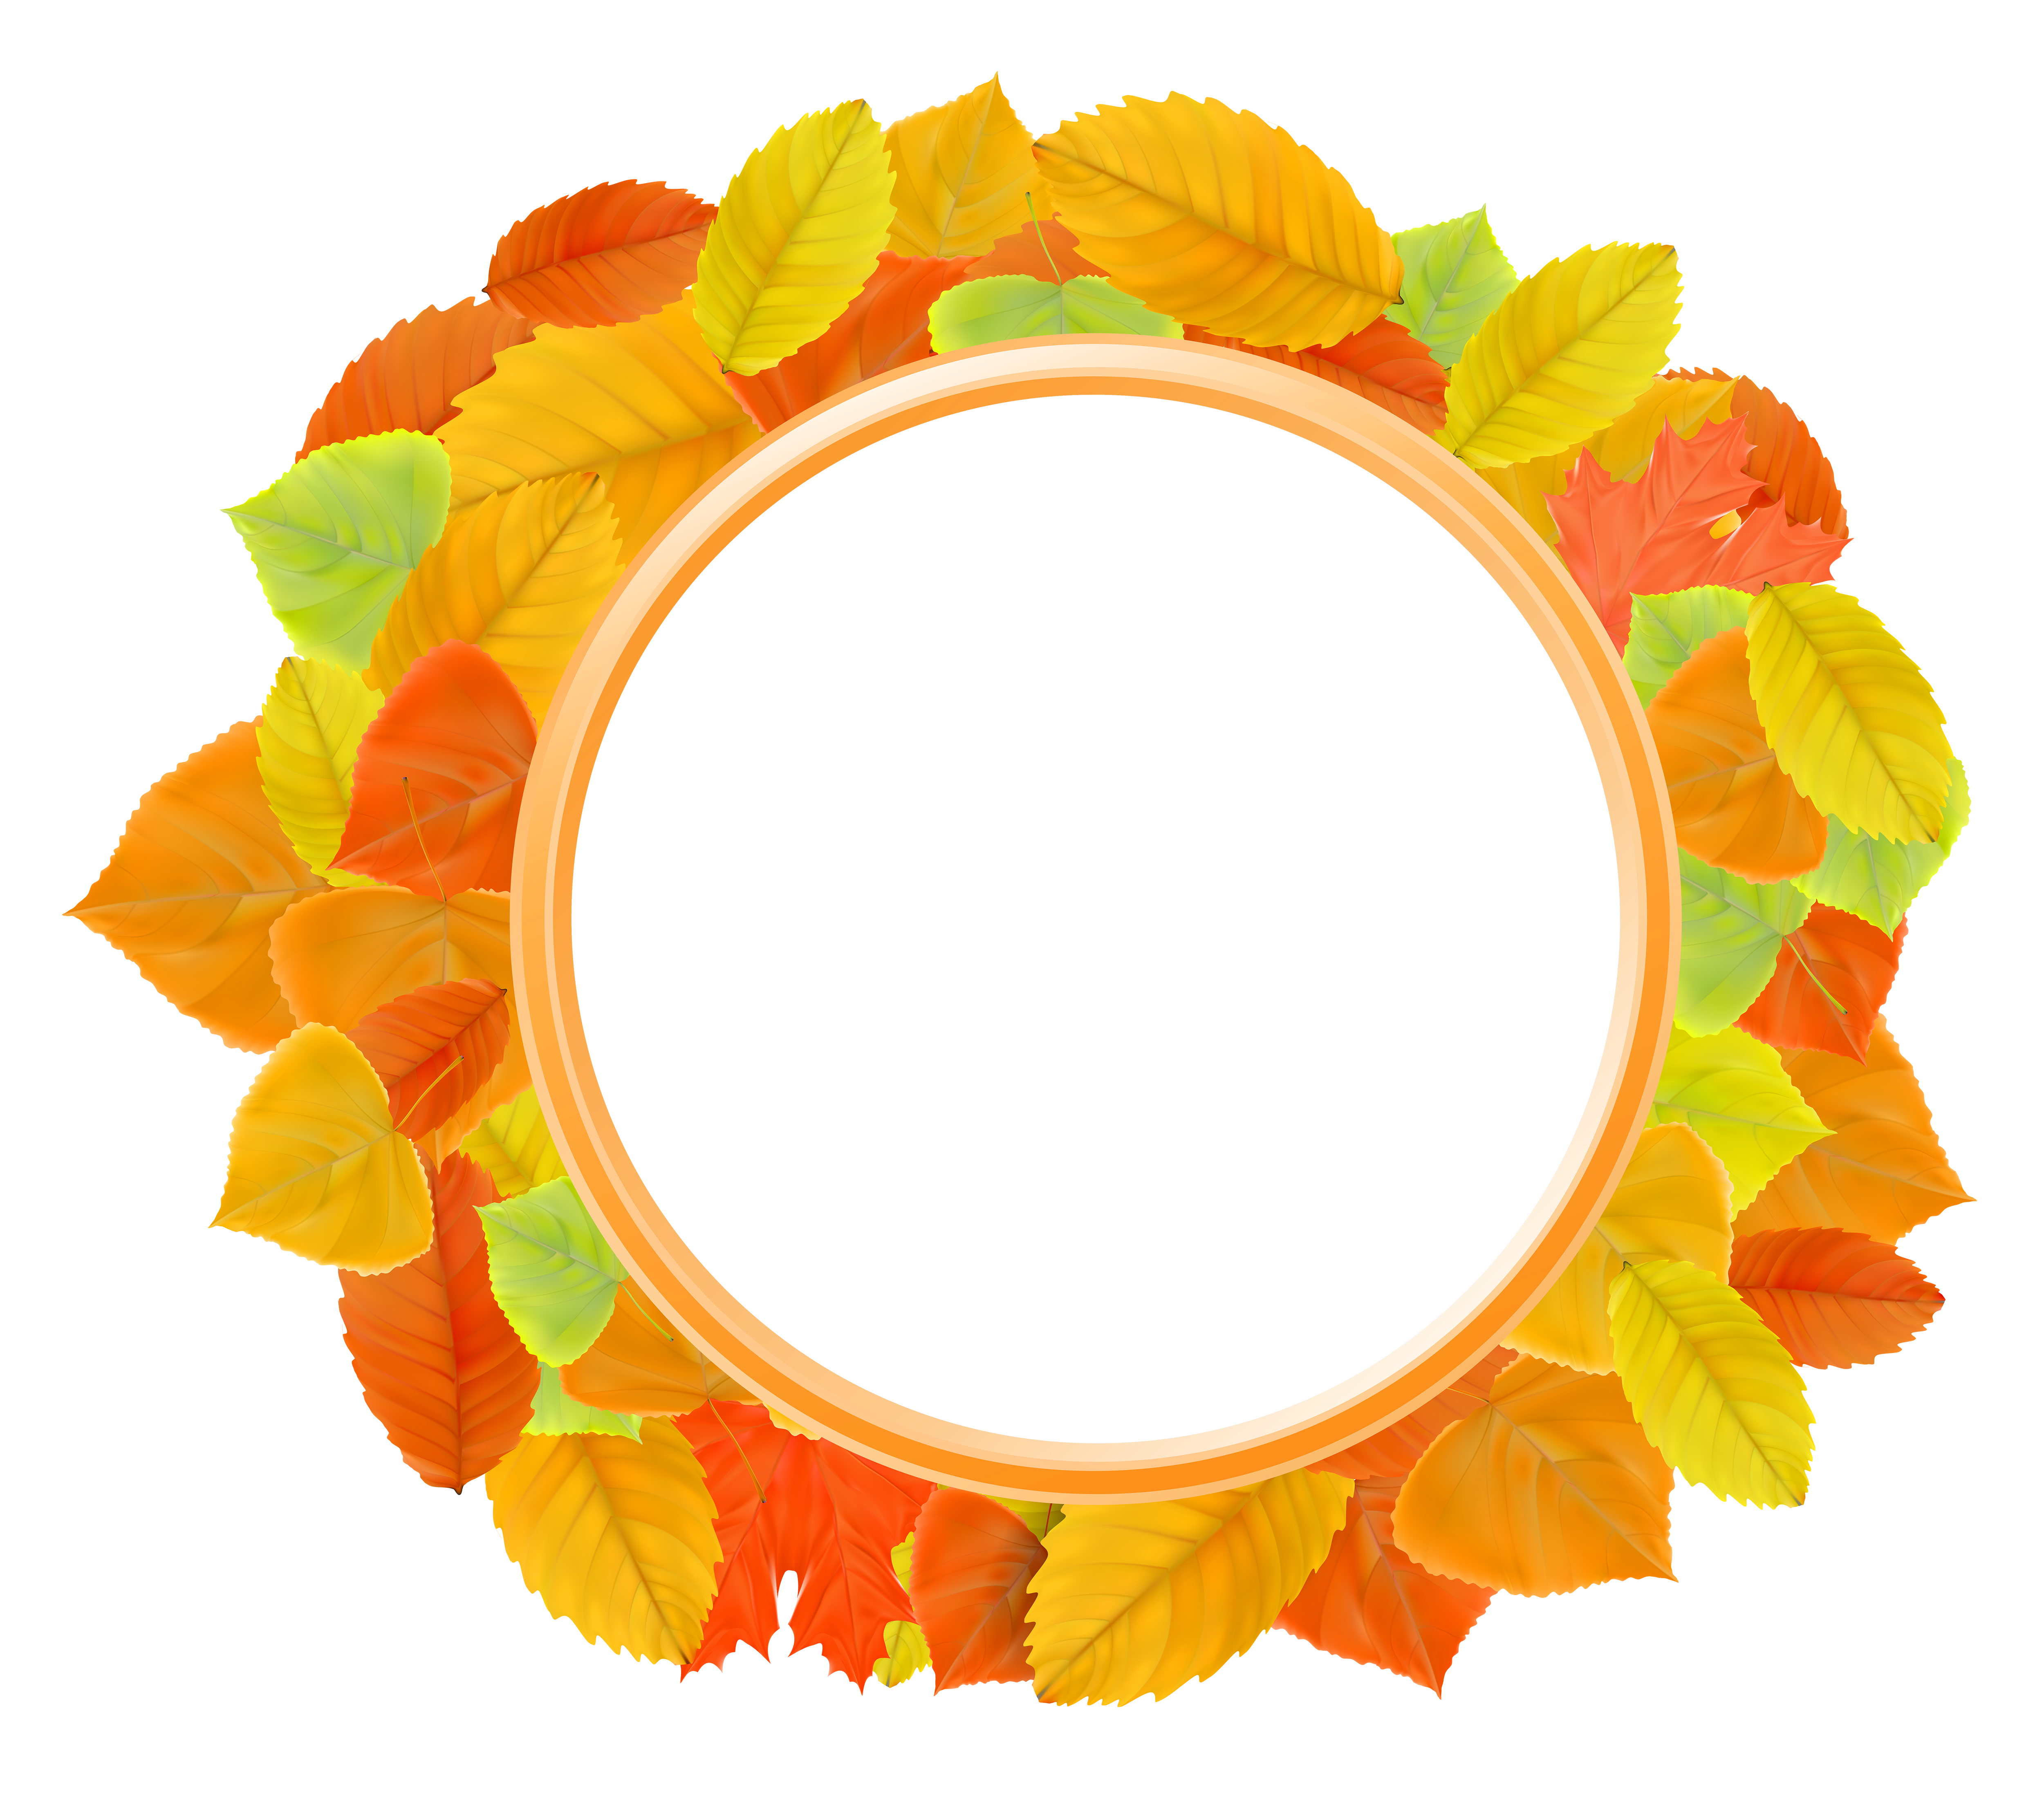 Leaves frame png. Autumn clipart image gallery